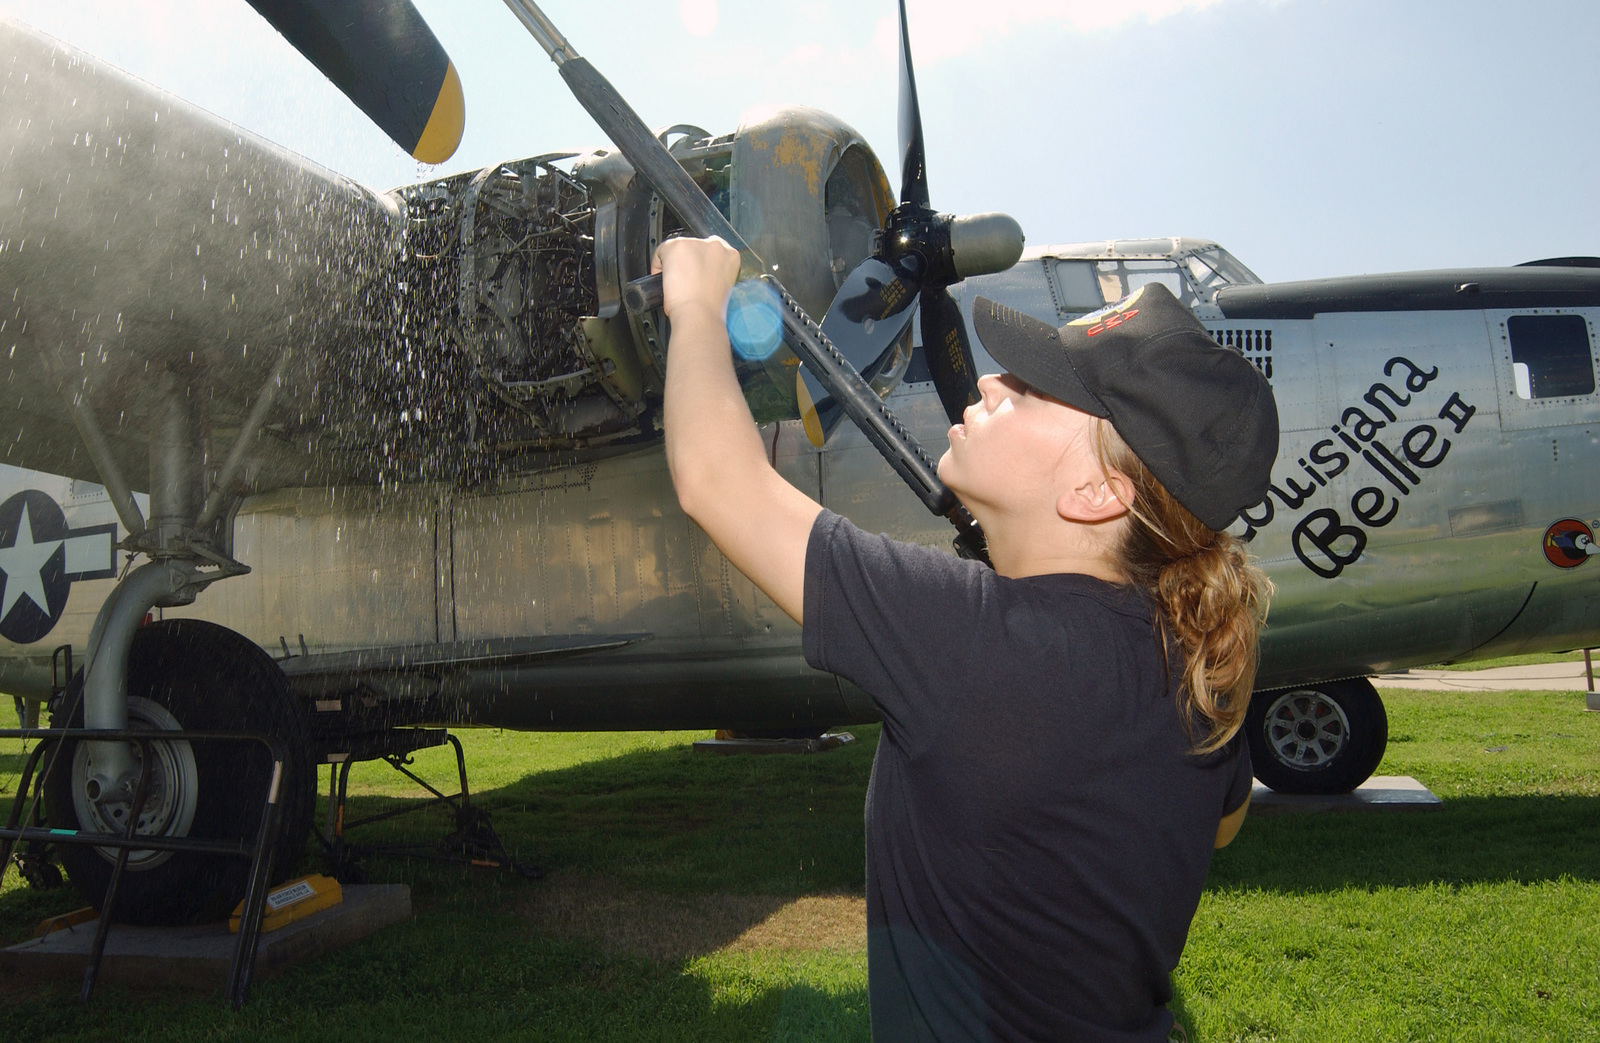 US Air Force (USAF) AIRMAN First Class (A1C) Kelli England (left), 2nd Civil Engineer Squadron (CES) cleans a propeller on a mock up World War Two (WII) B-24J as part of a team assigned to clean up the Barksdales Material Heritage on Display at the 8th Air Force Museum, located at Barksdale Air Force Base (AFB), Louisiana (LA)